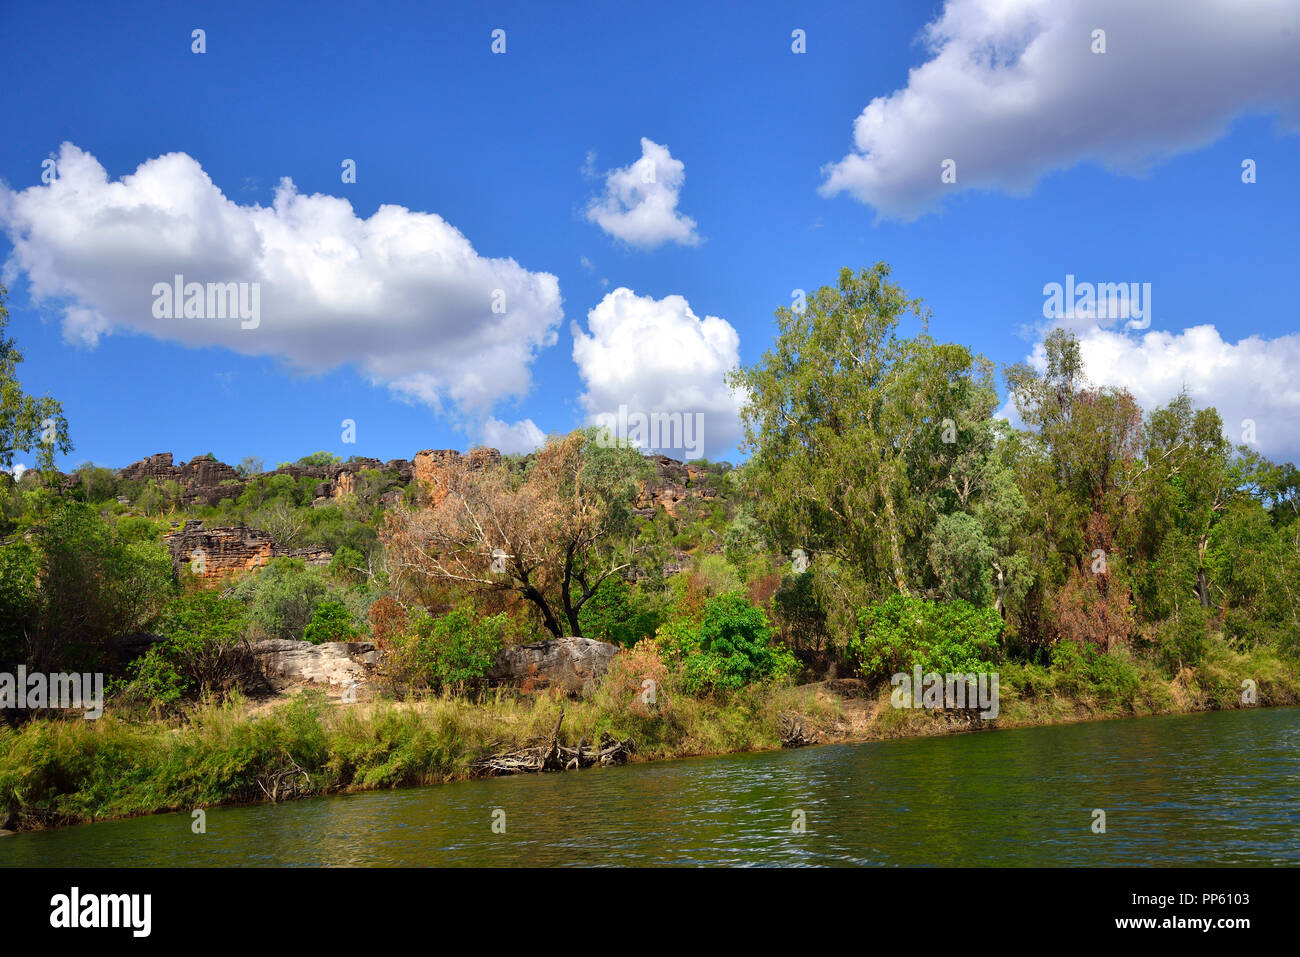 Views of Arnhem Land taken from the East Alligator River,Northern Territory, Australia Stock Photo